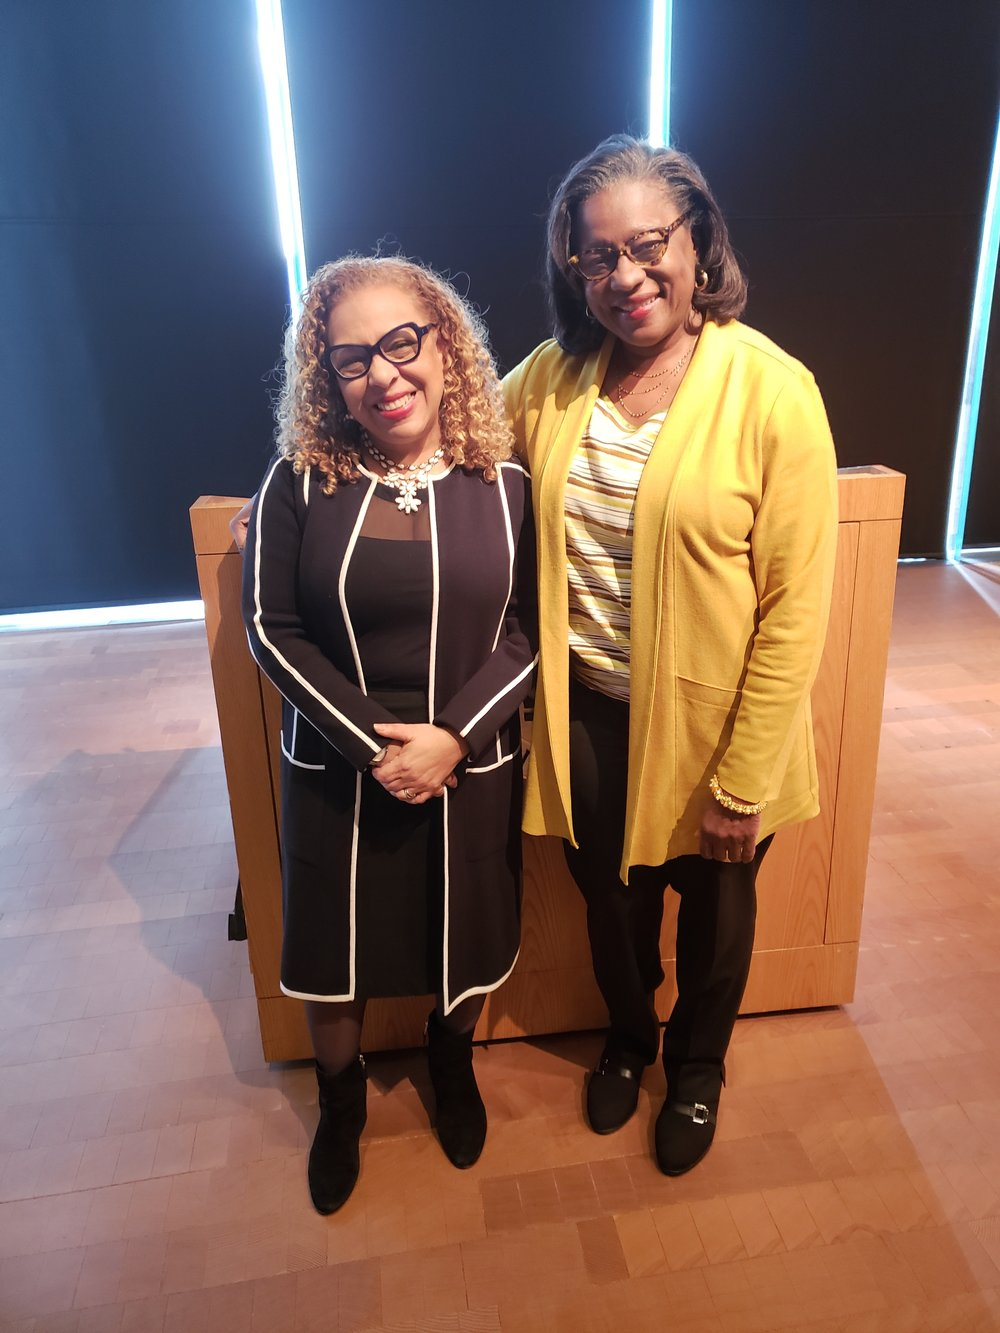 Kellie Jones and Hilda Y. Hutcherson, Professor of Obstetrics and Gynecology at the Columbia University Medical Center; Senior Associate Dean for Diversity and Multicultural Affairs, College of Physicians and Surgeons.